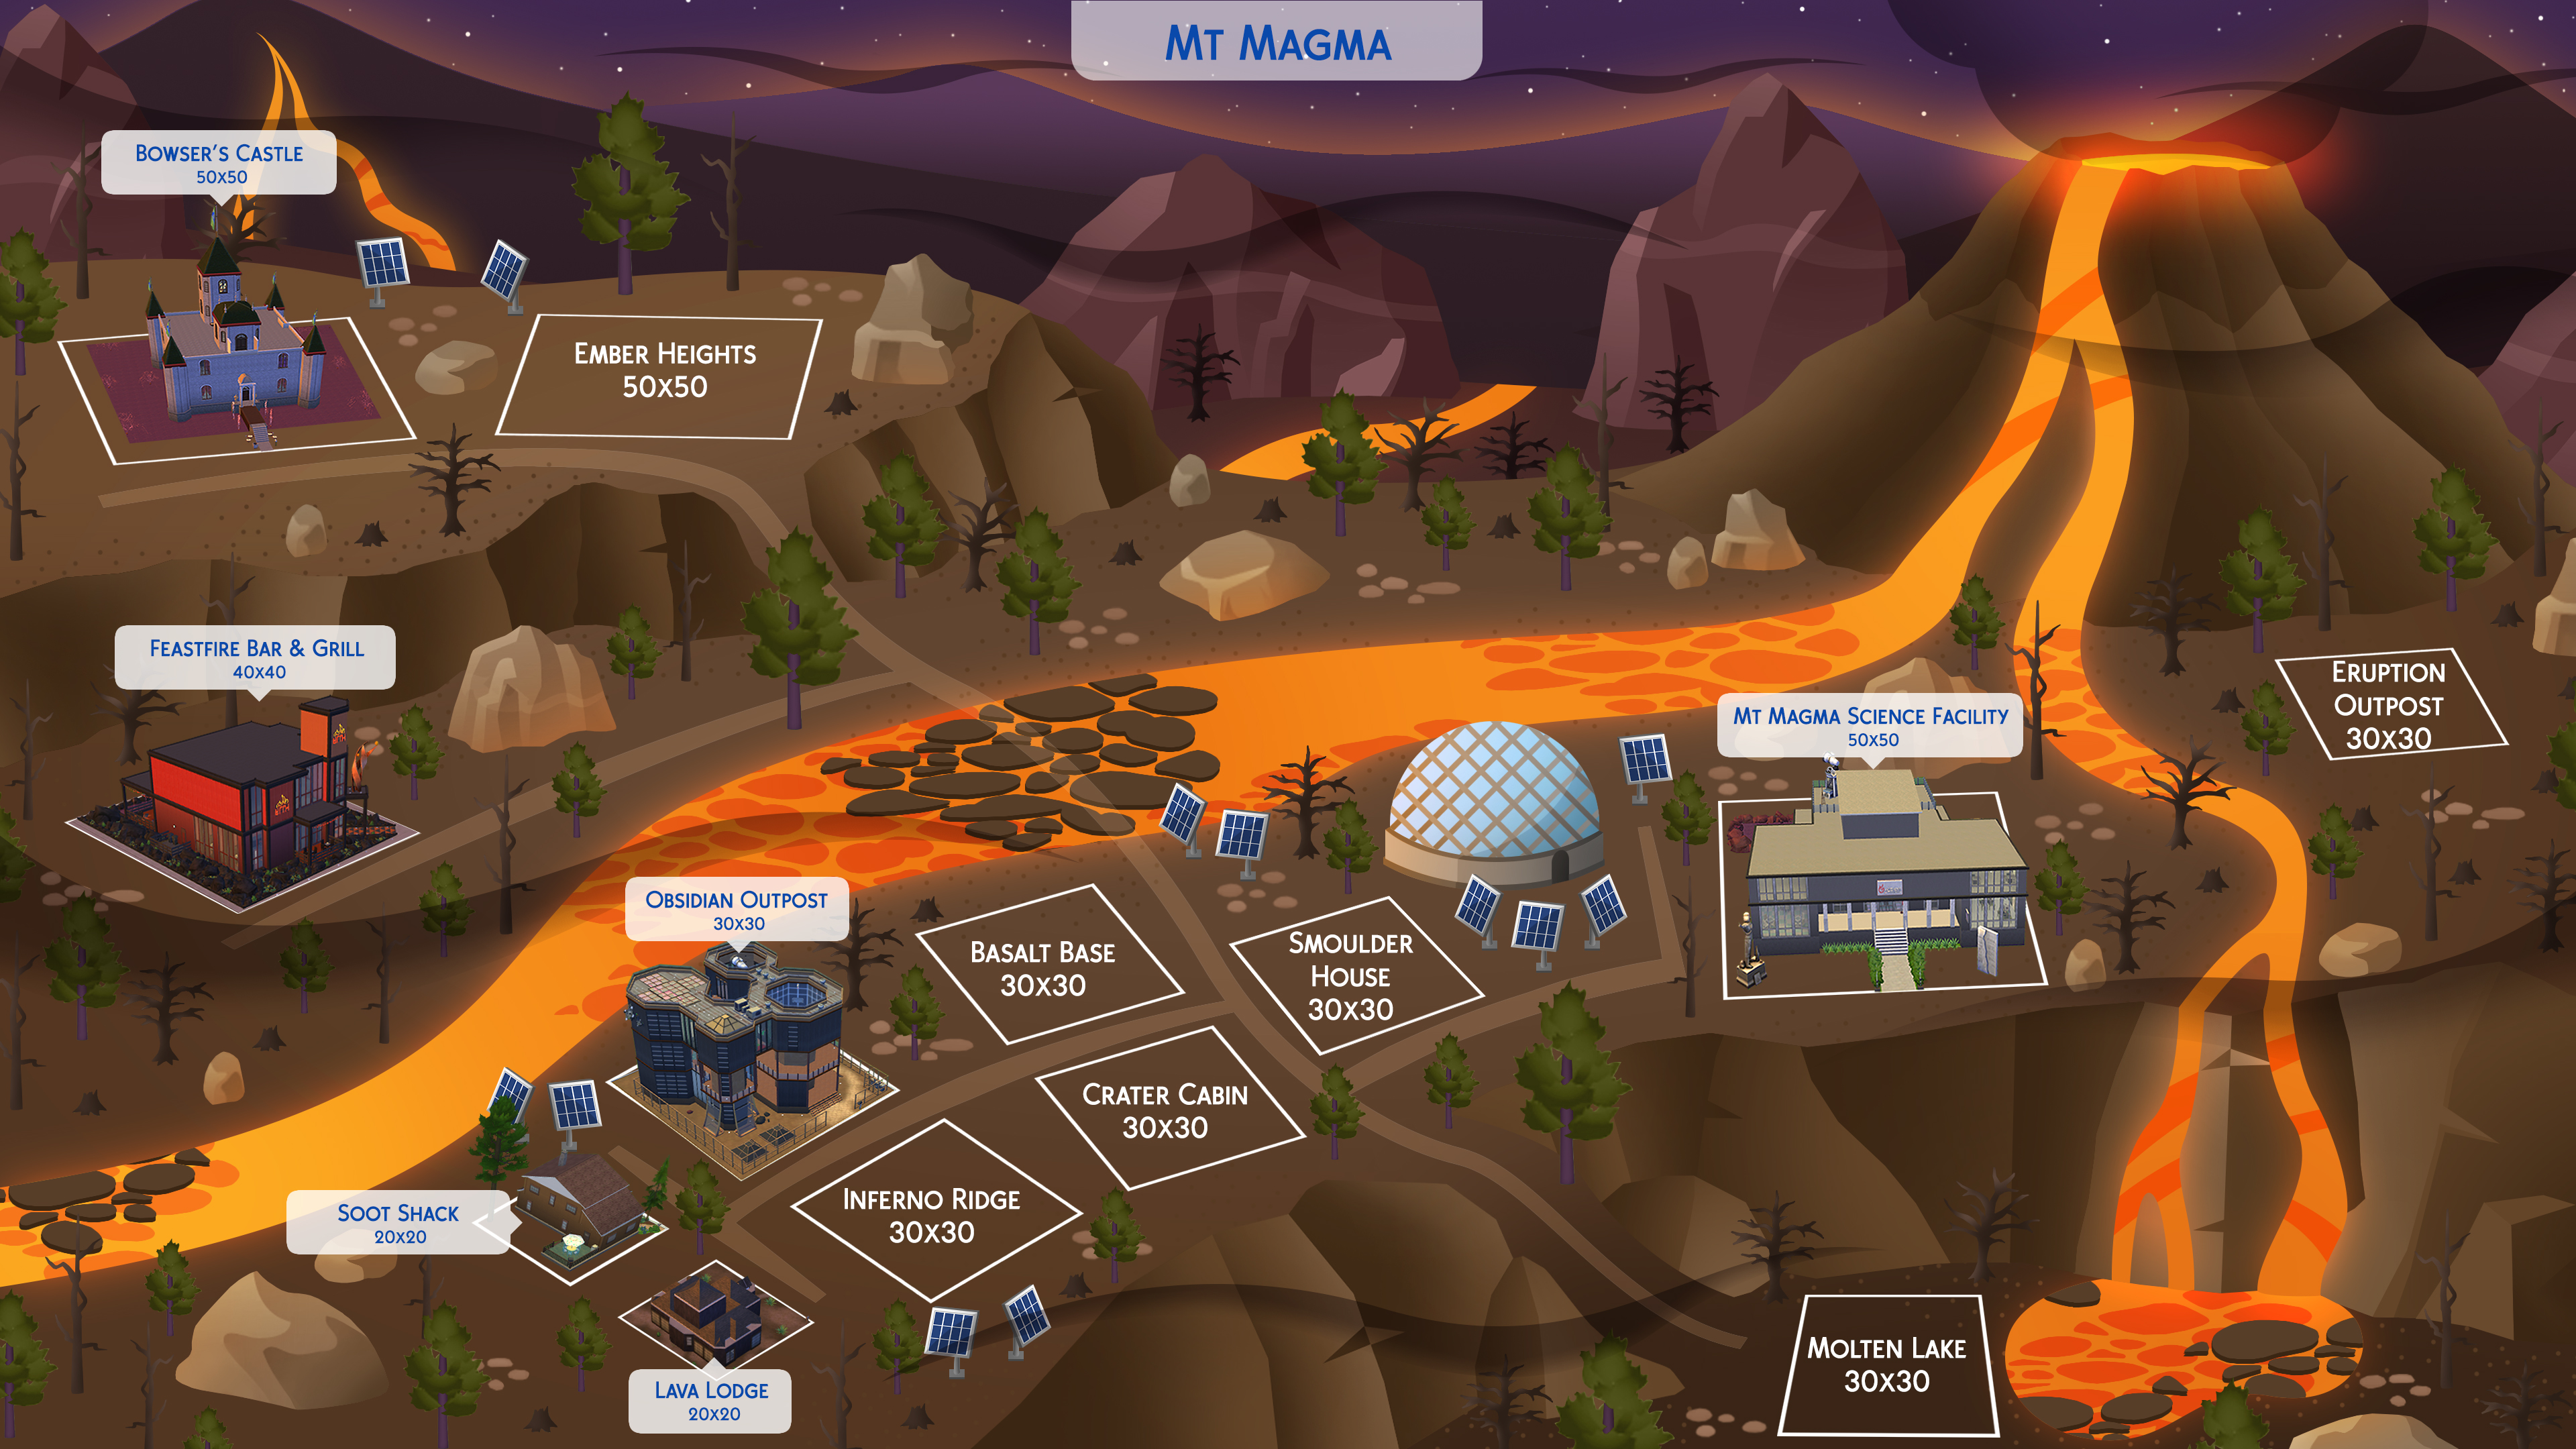 Fan made maps for the sims 4 sims globe has shared some of their amazing work in the form of sims 4 world maps can you imagine having these world maps become a reality in the game gumiabroncs Choice Image